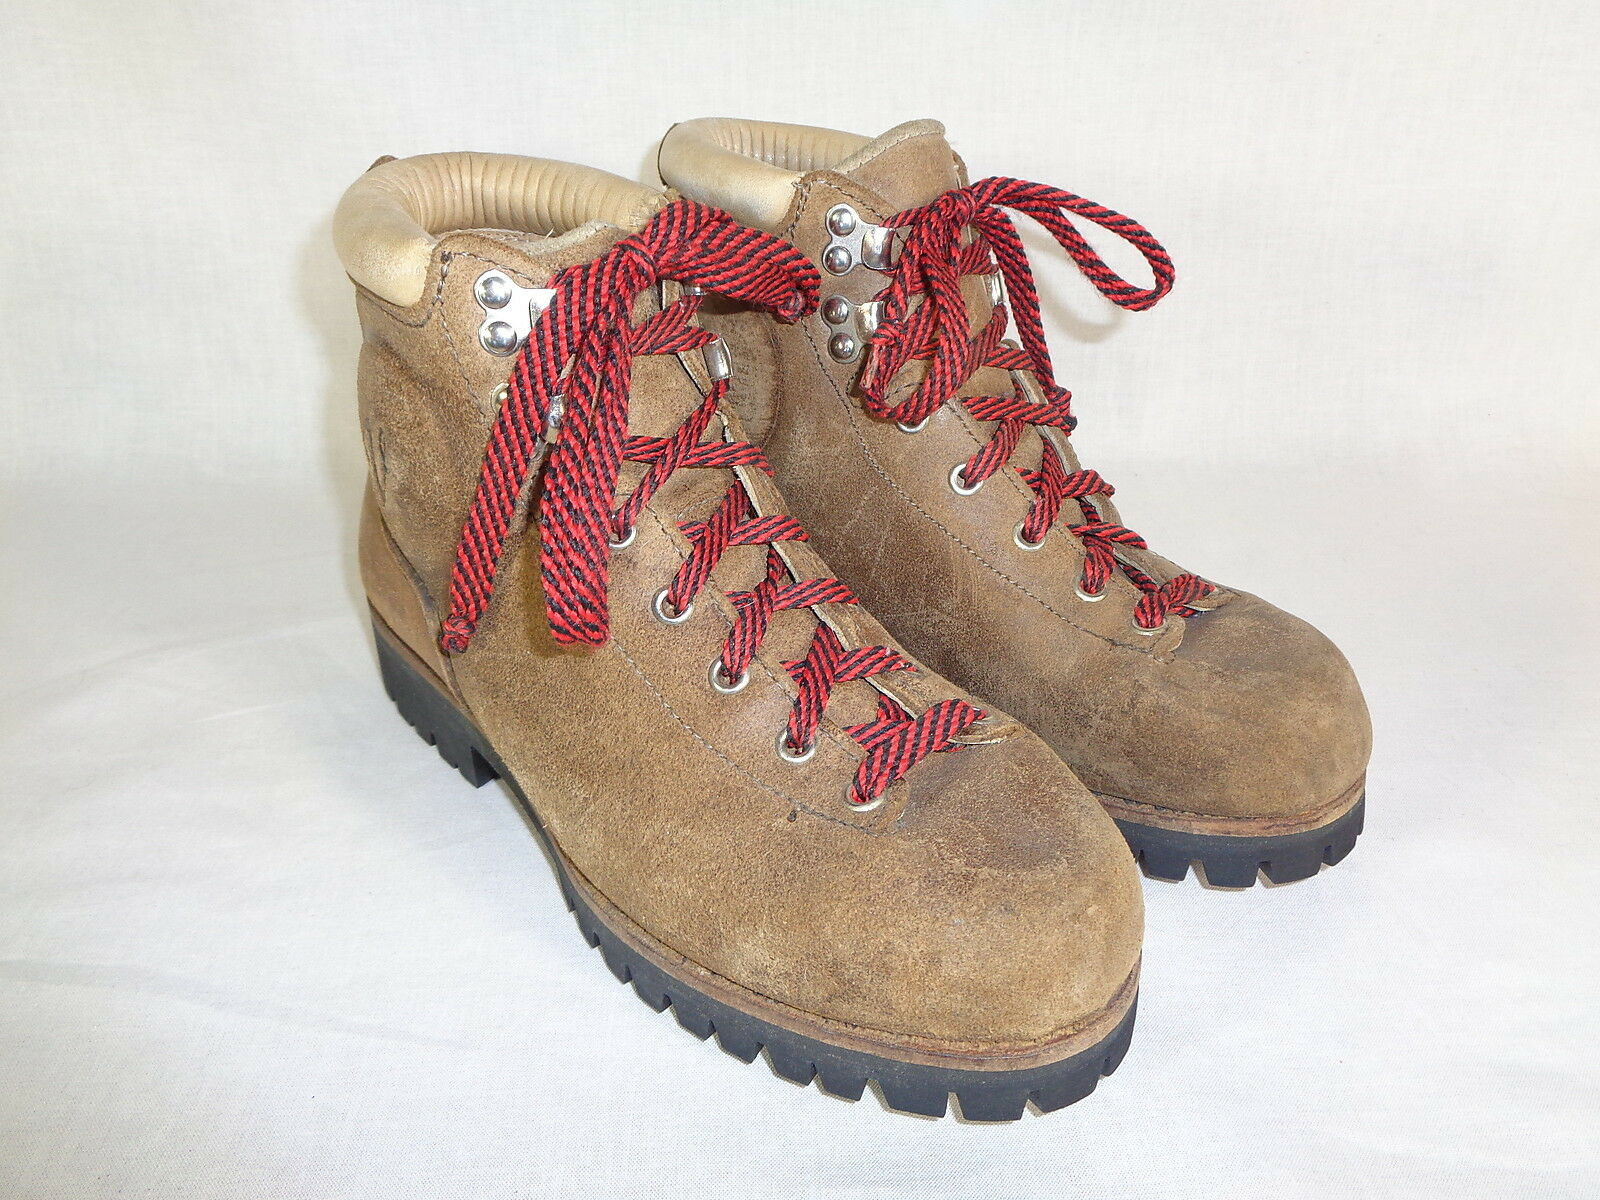 Vasque Women's Boots Hiking Leather Leather Leather Lug Sole  Mountaineering 70's Vintage 6 4d9381